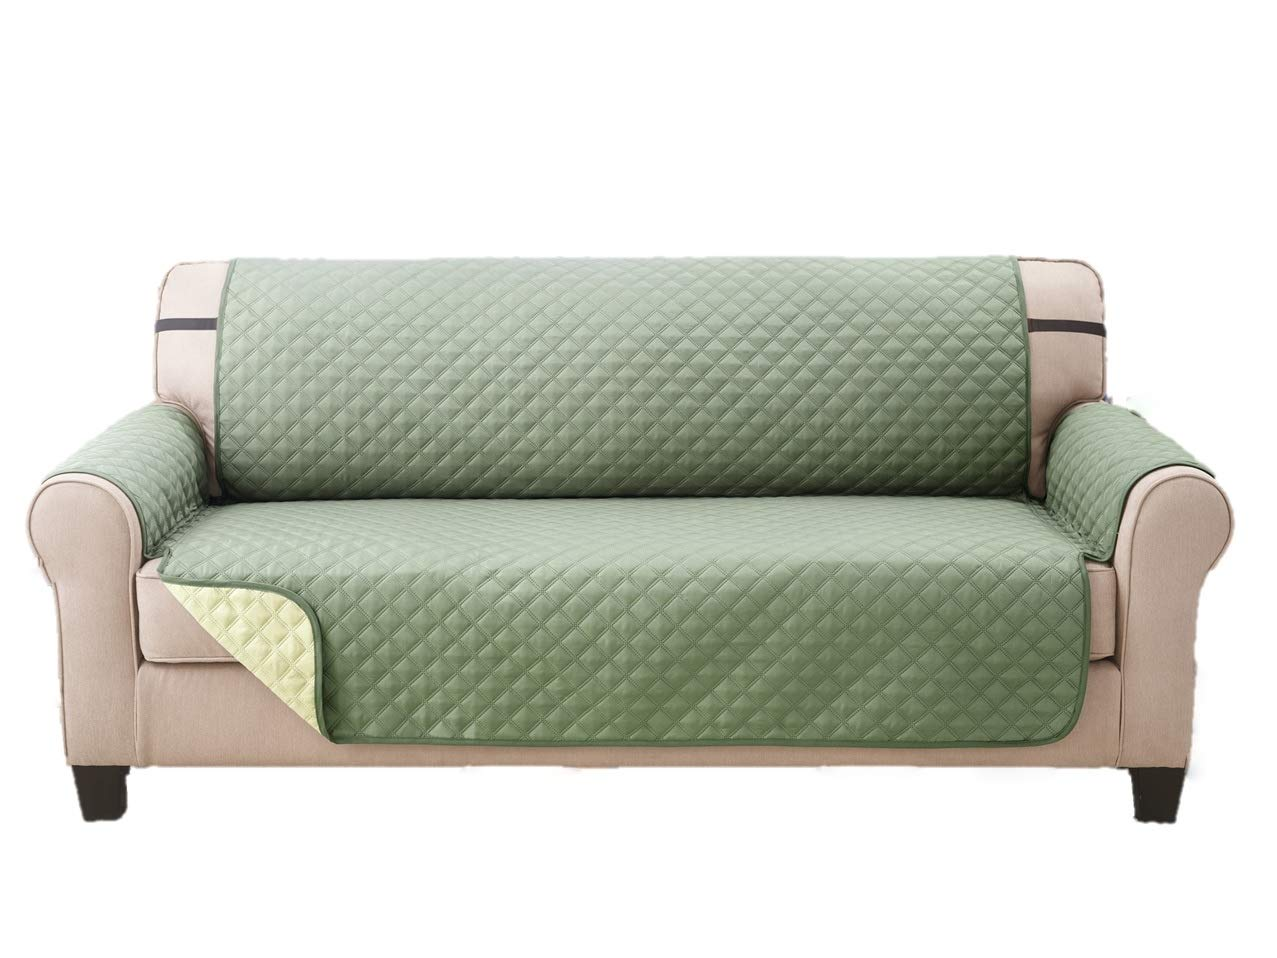 Extra Wide Reversible Sofa Couch Covers For Pets Furniture